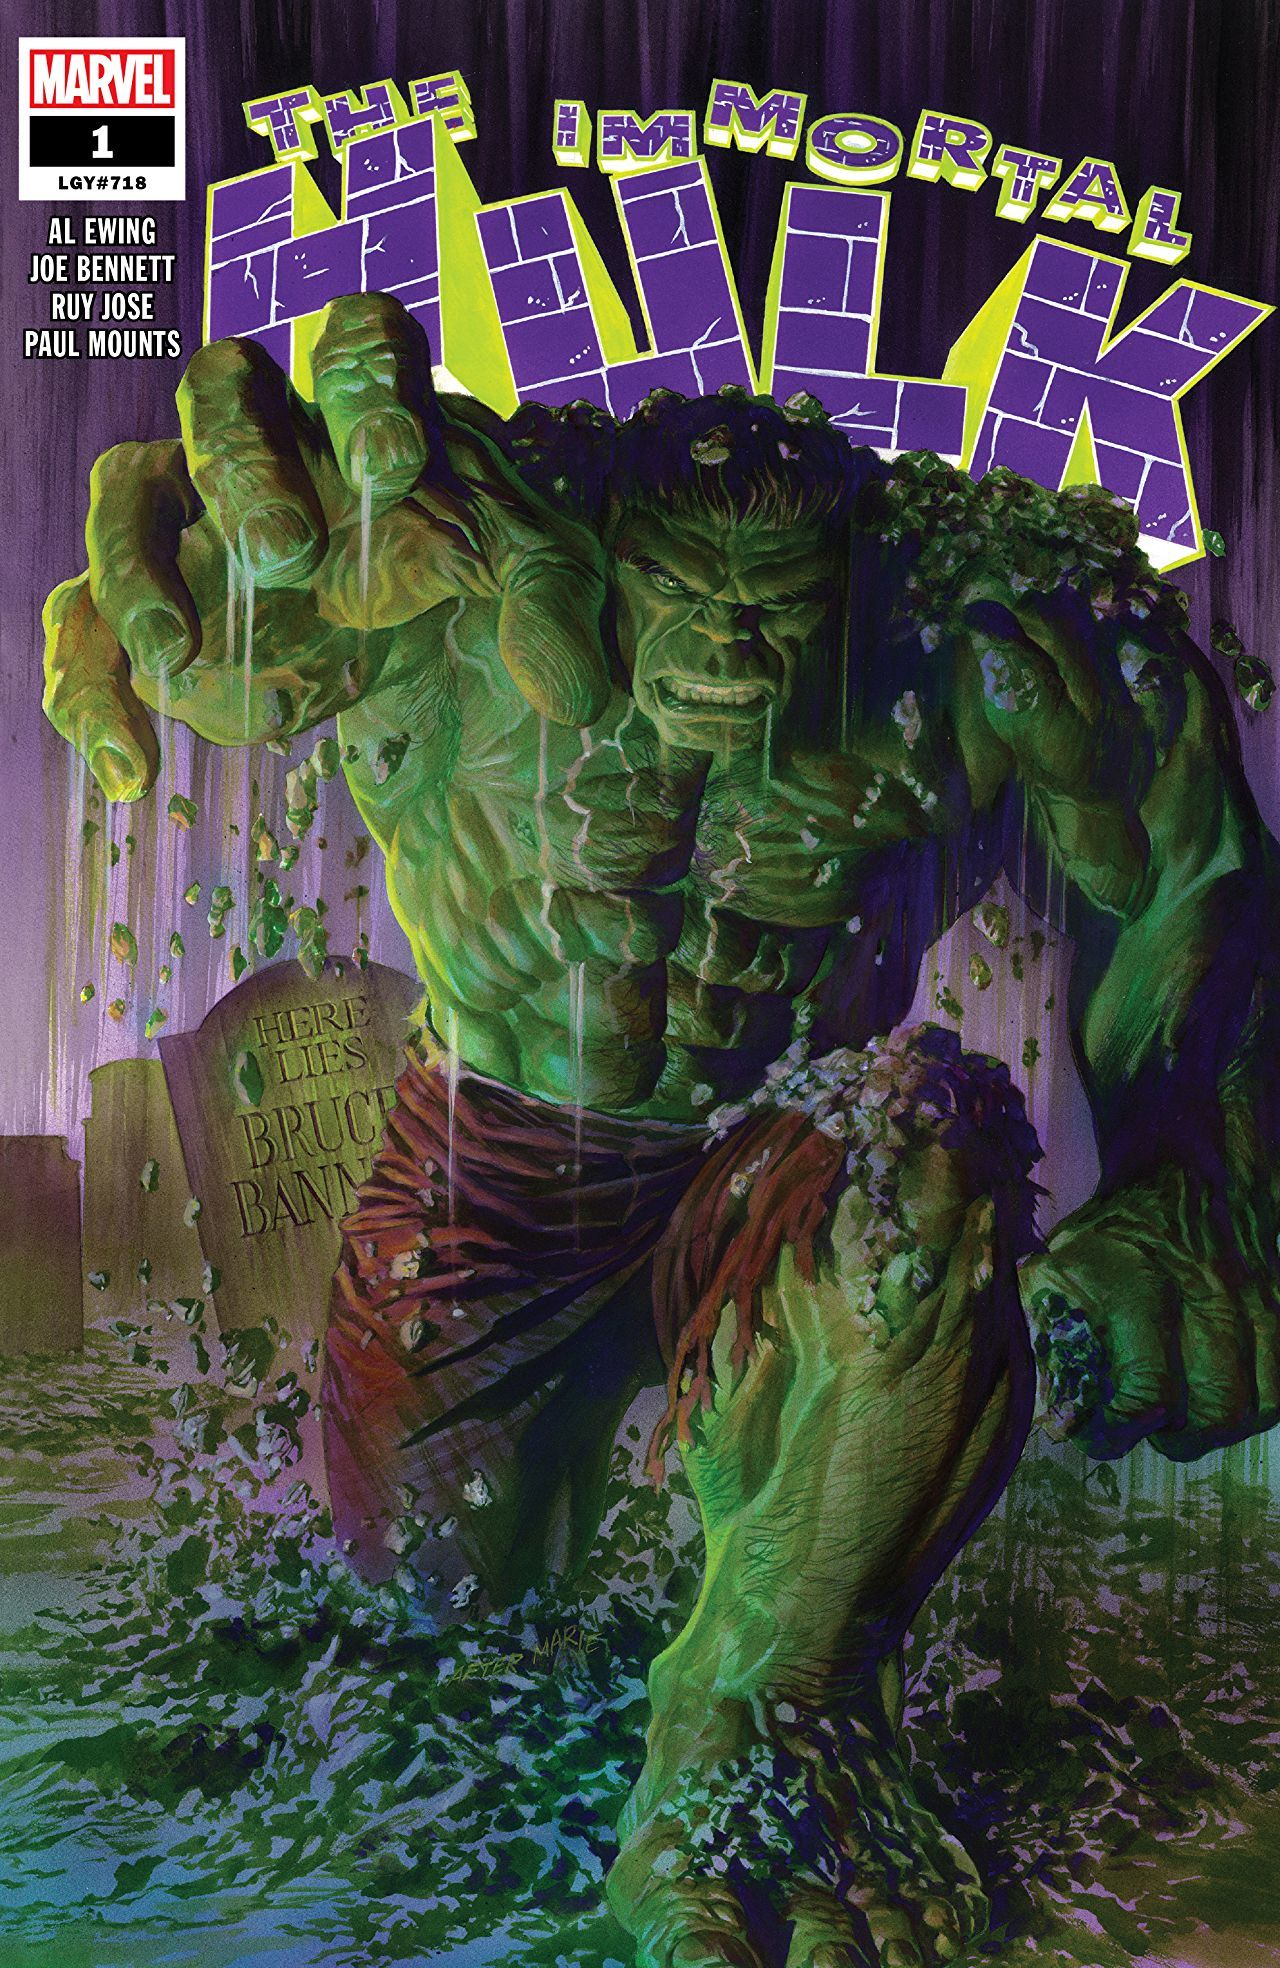 Now is the Time to Catch Up on the Immortal Hulk if You haven't